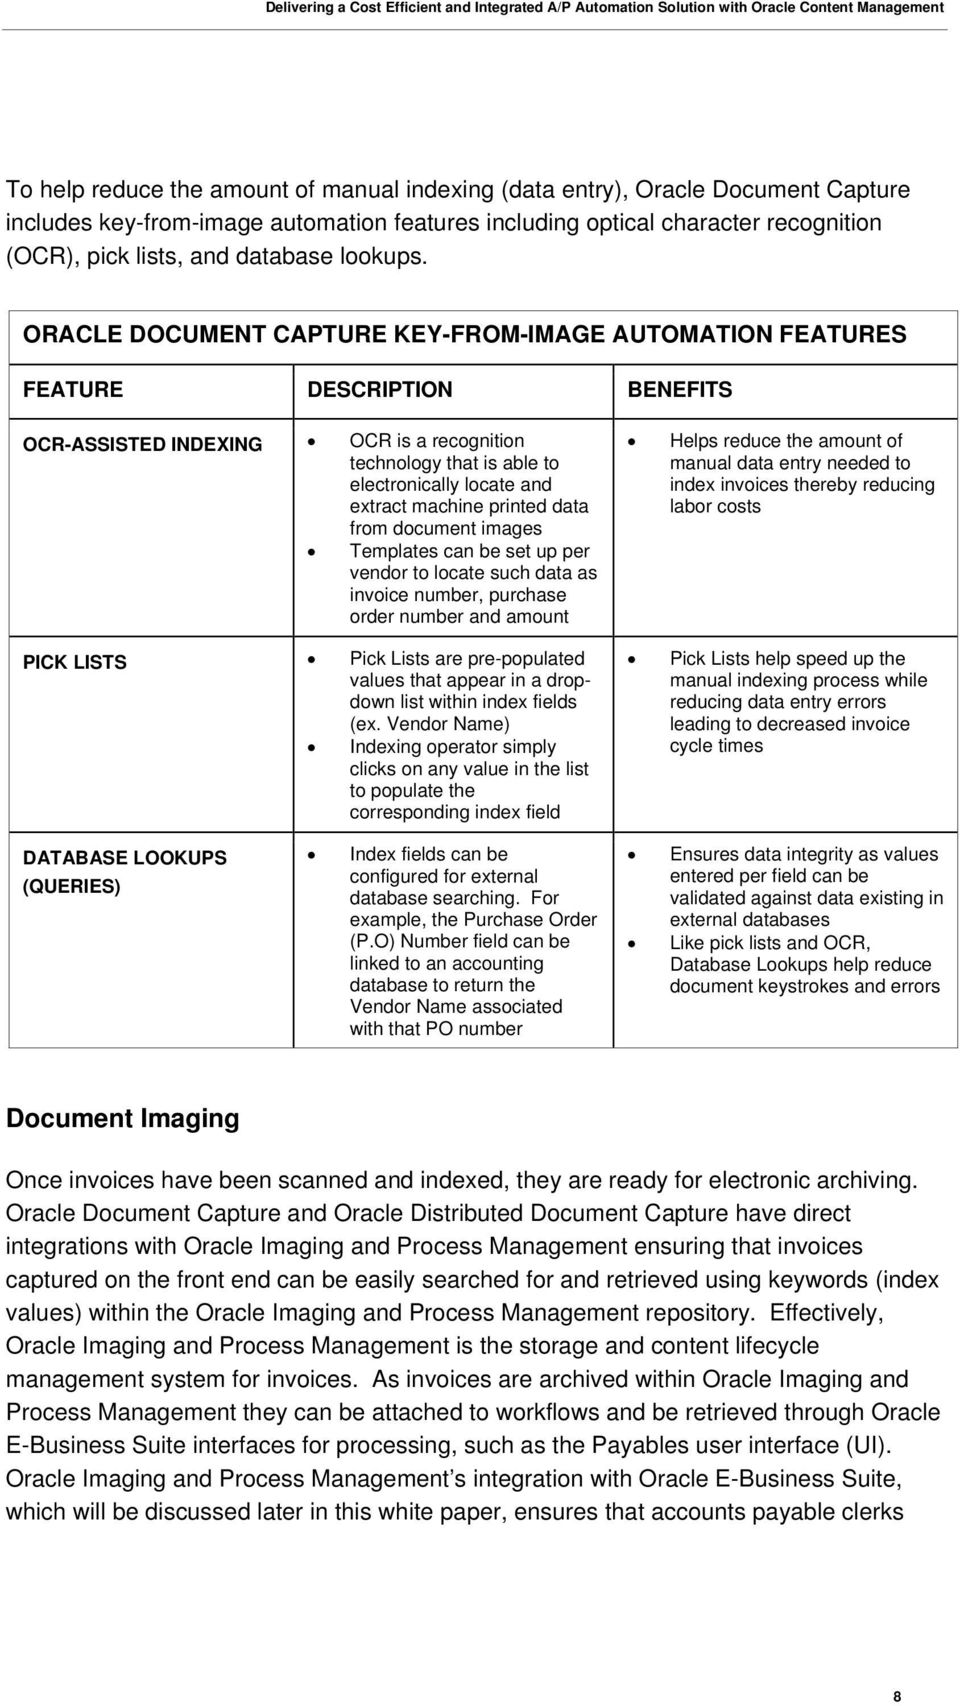 ORACLE DOCUMENT CAPTURE KEY-FROM-IMAGE AUTOMATION FEATURES FEATURE DESCRIPTION BENEFITS OCR-ASSISTED INDEXING OCR is a recognition technology that is able to electronically locate and extract machine